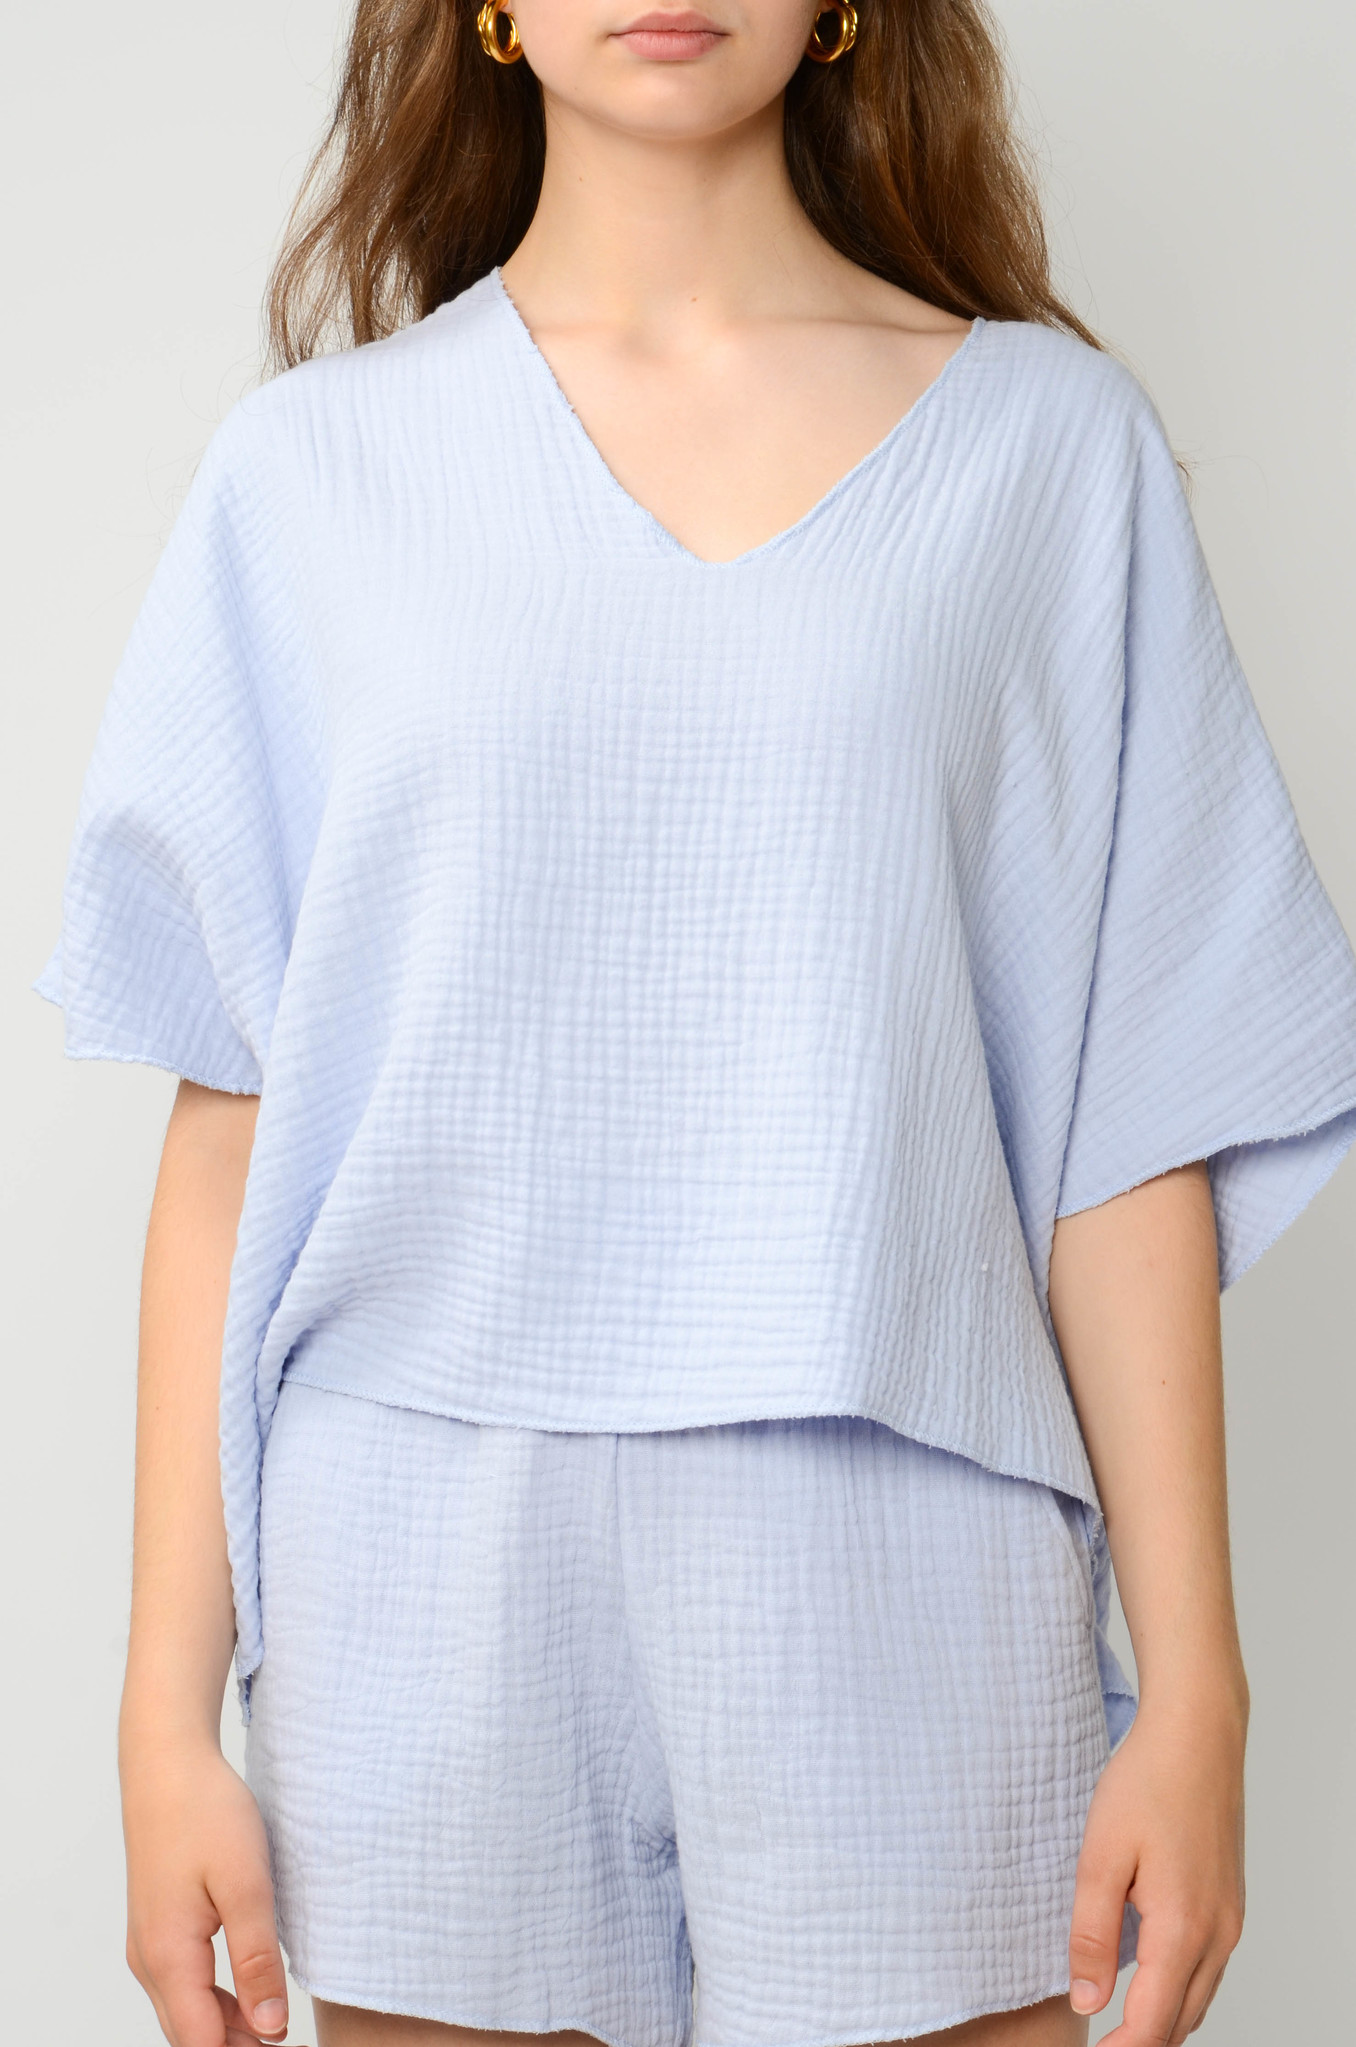 DATAI TOP IN ICE BLUE-1